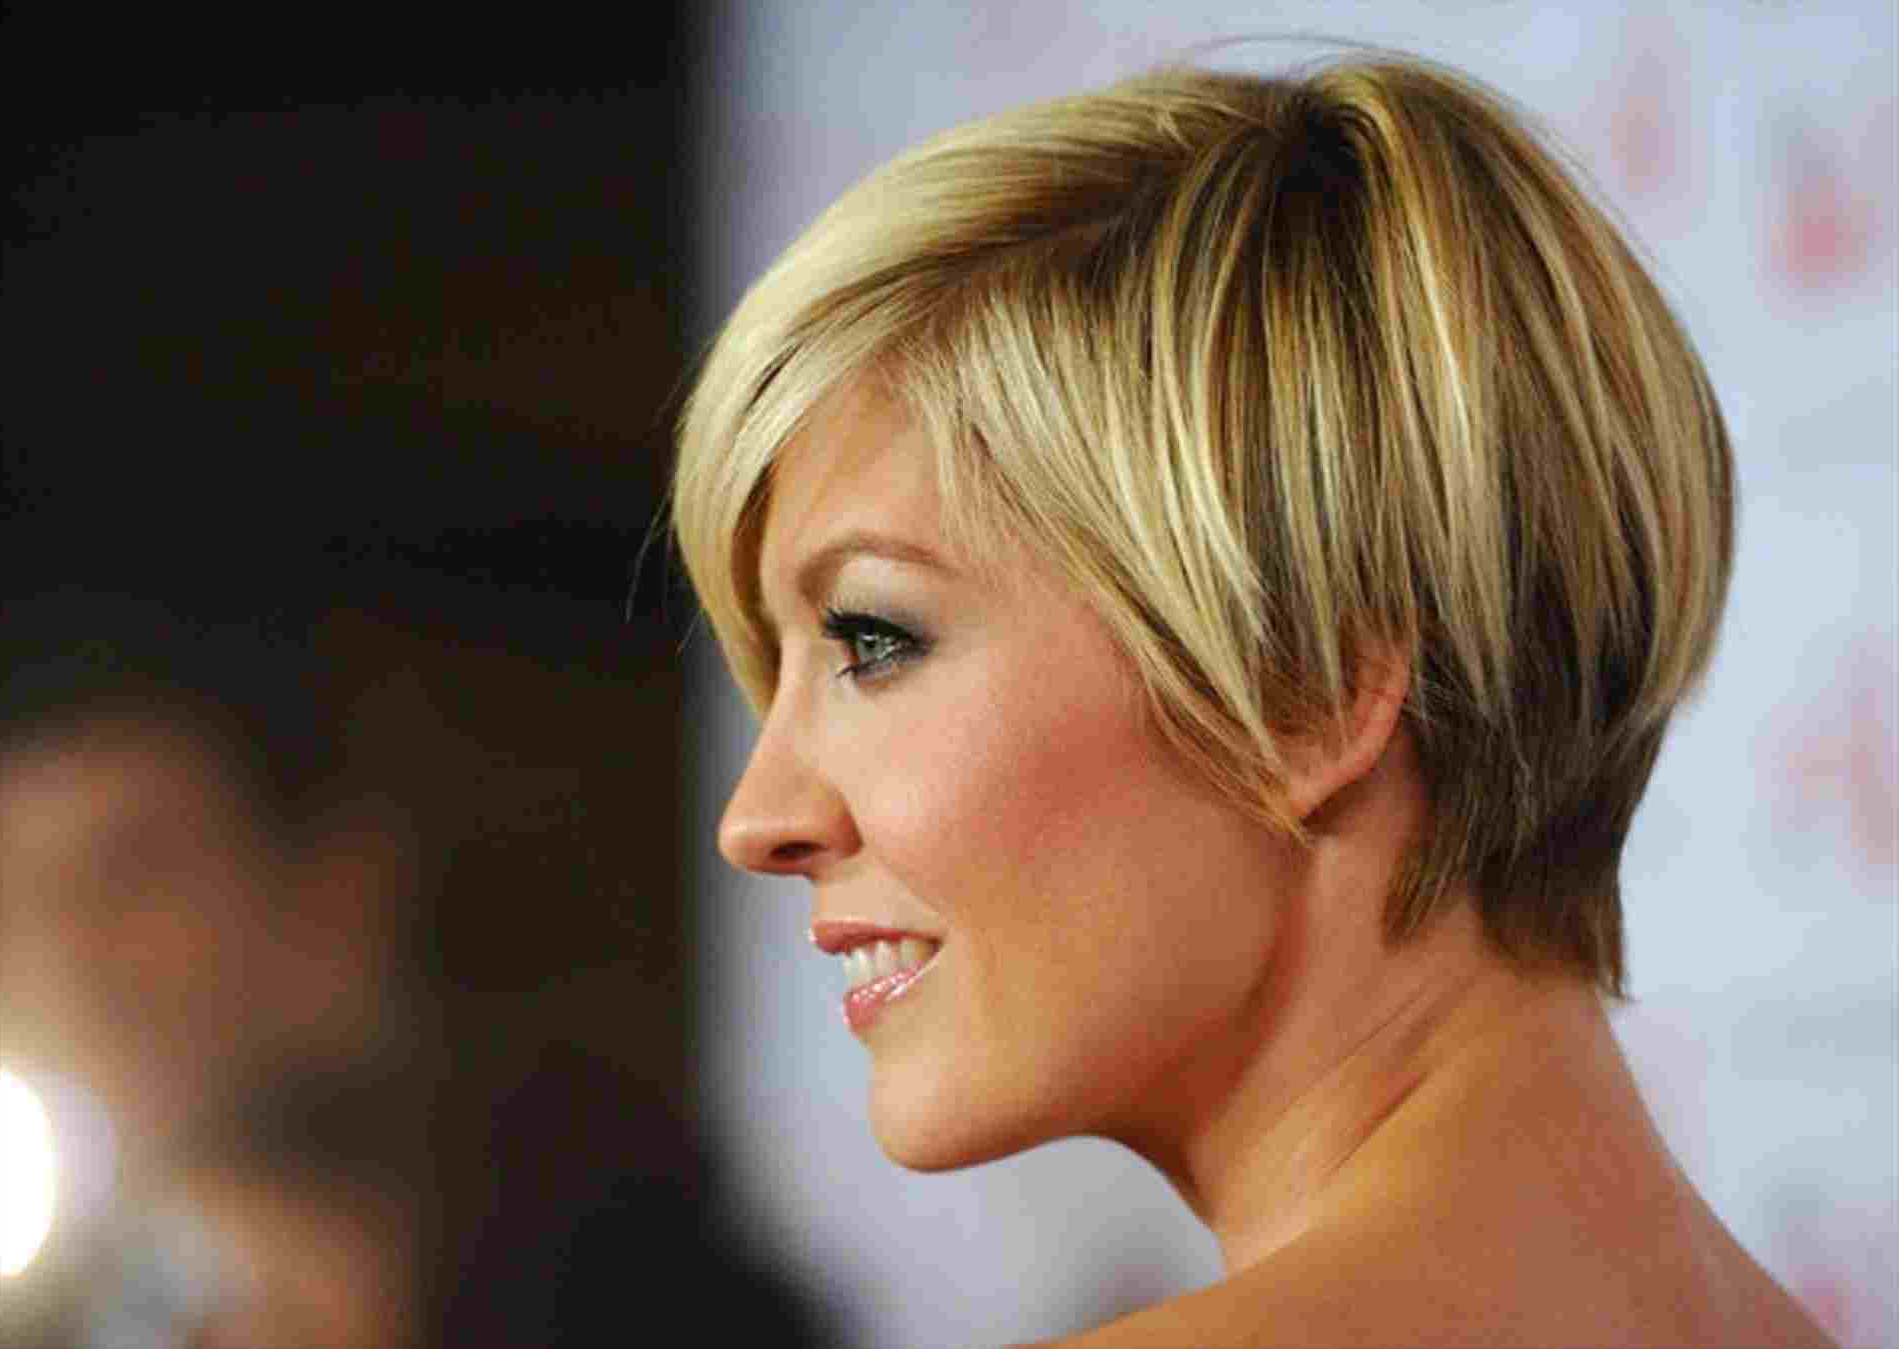 Hairstyles For Fat Women Over 40 Trend Hairstyle And Haircut Throughout Short Hairstyles Fine Hair Over  (View 12 of 25)